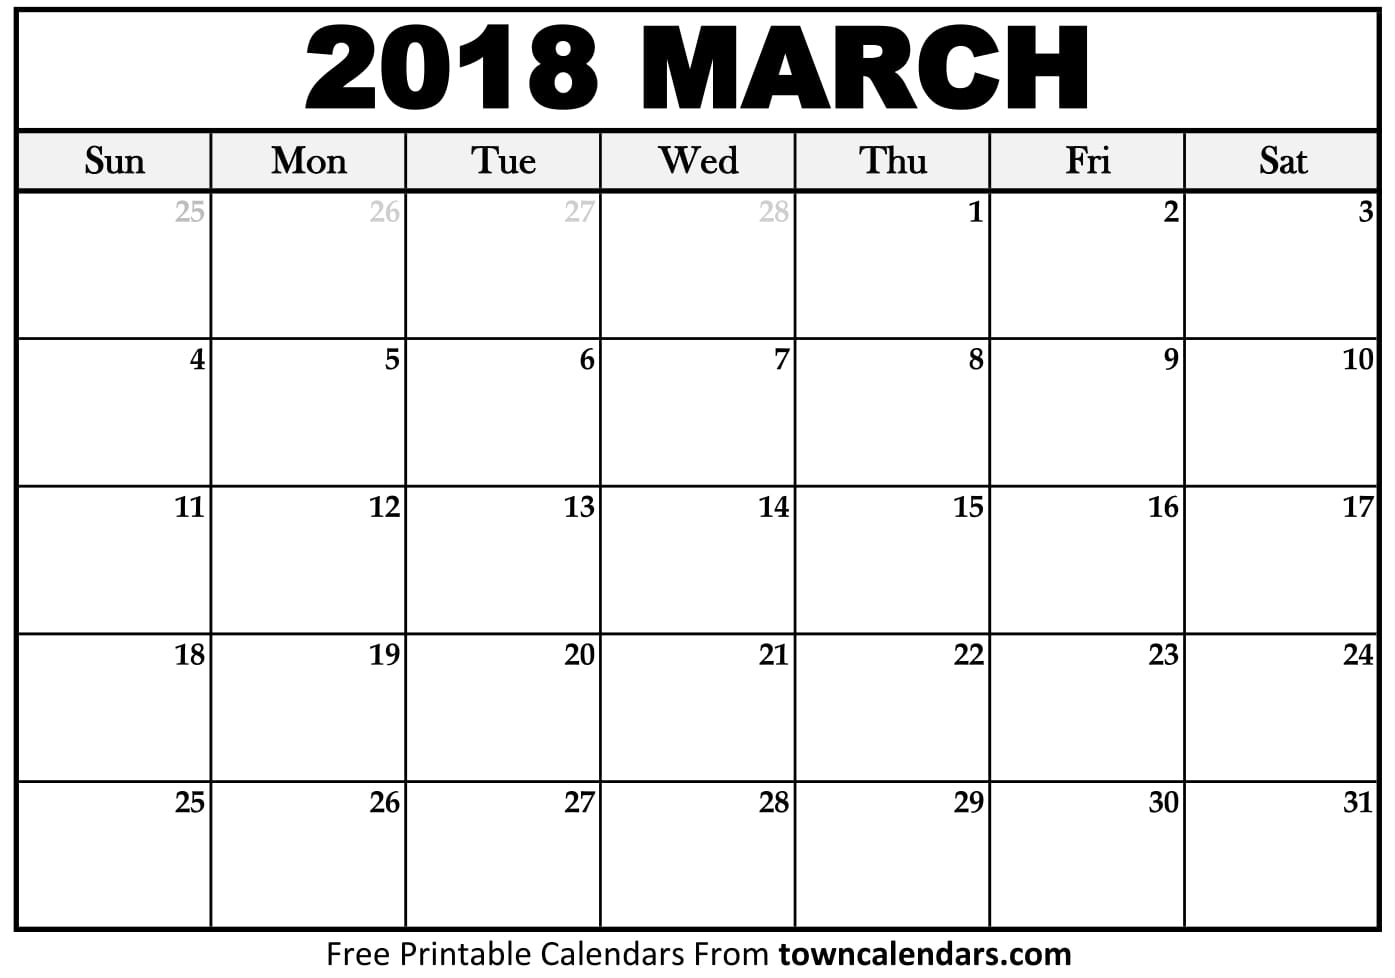 Calendar April And March : Printable march calendar towncalendars